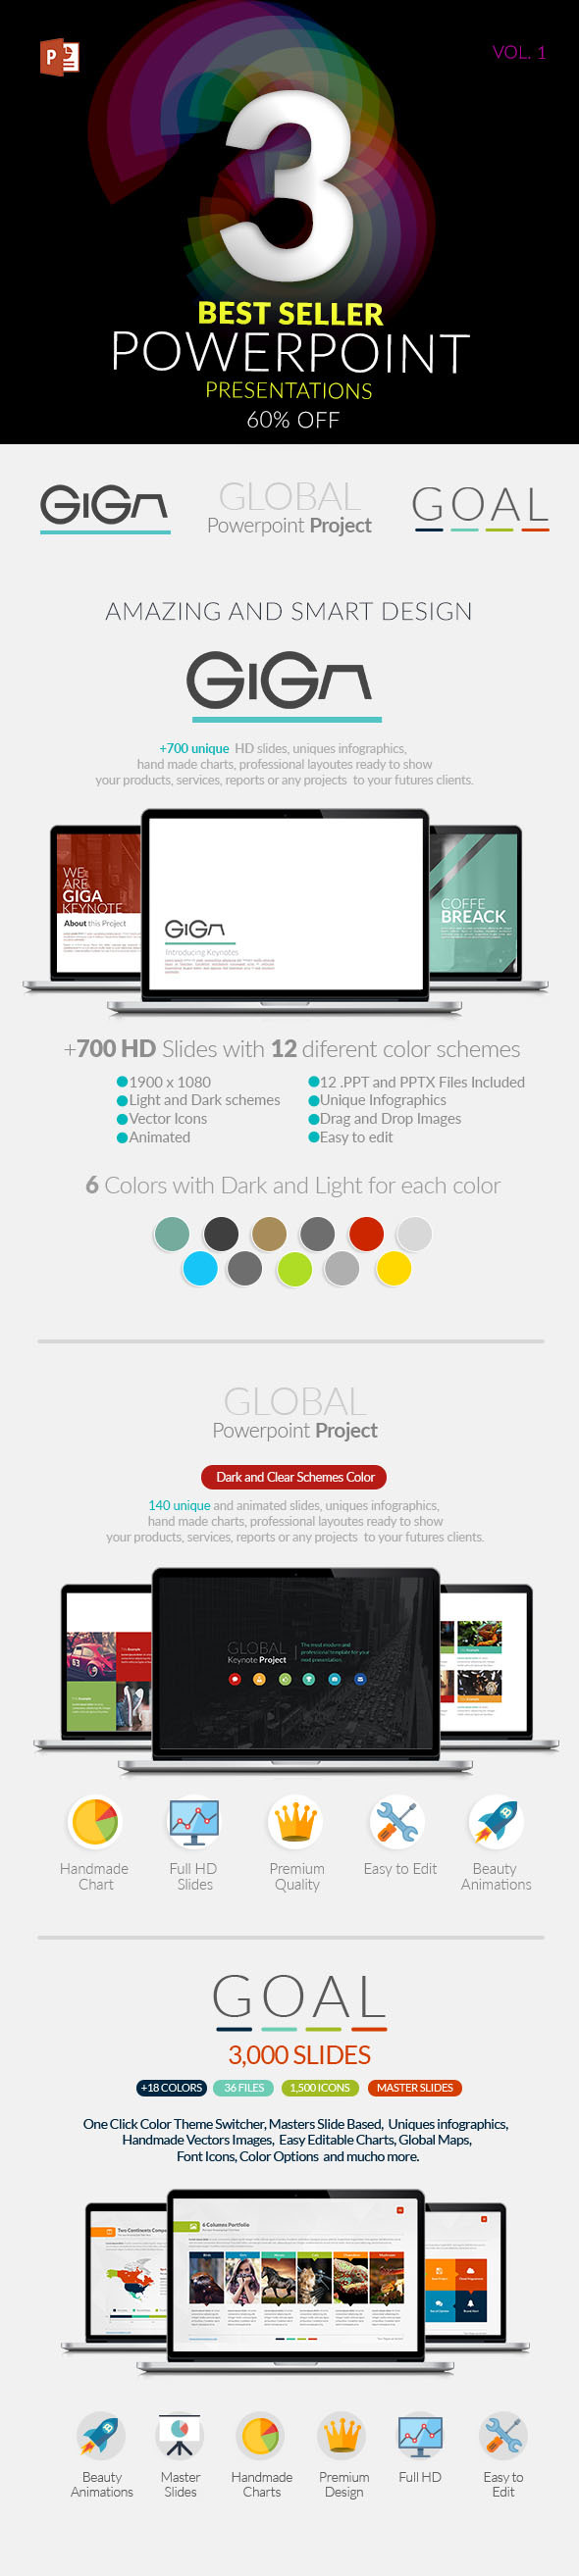 3 powerpoint templates pack download here httpgraphicriver 3 powerpoint templates pack download here httpgraphicriver toneelgroepblik Image collections